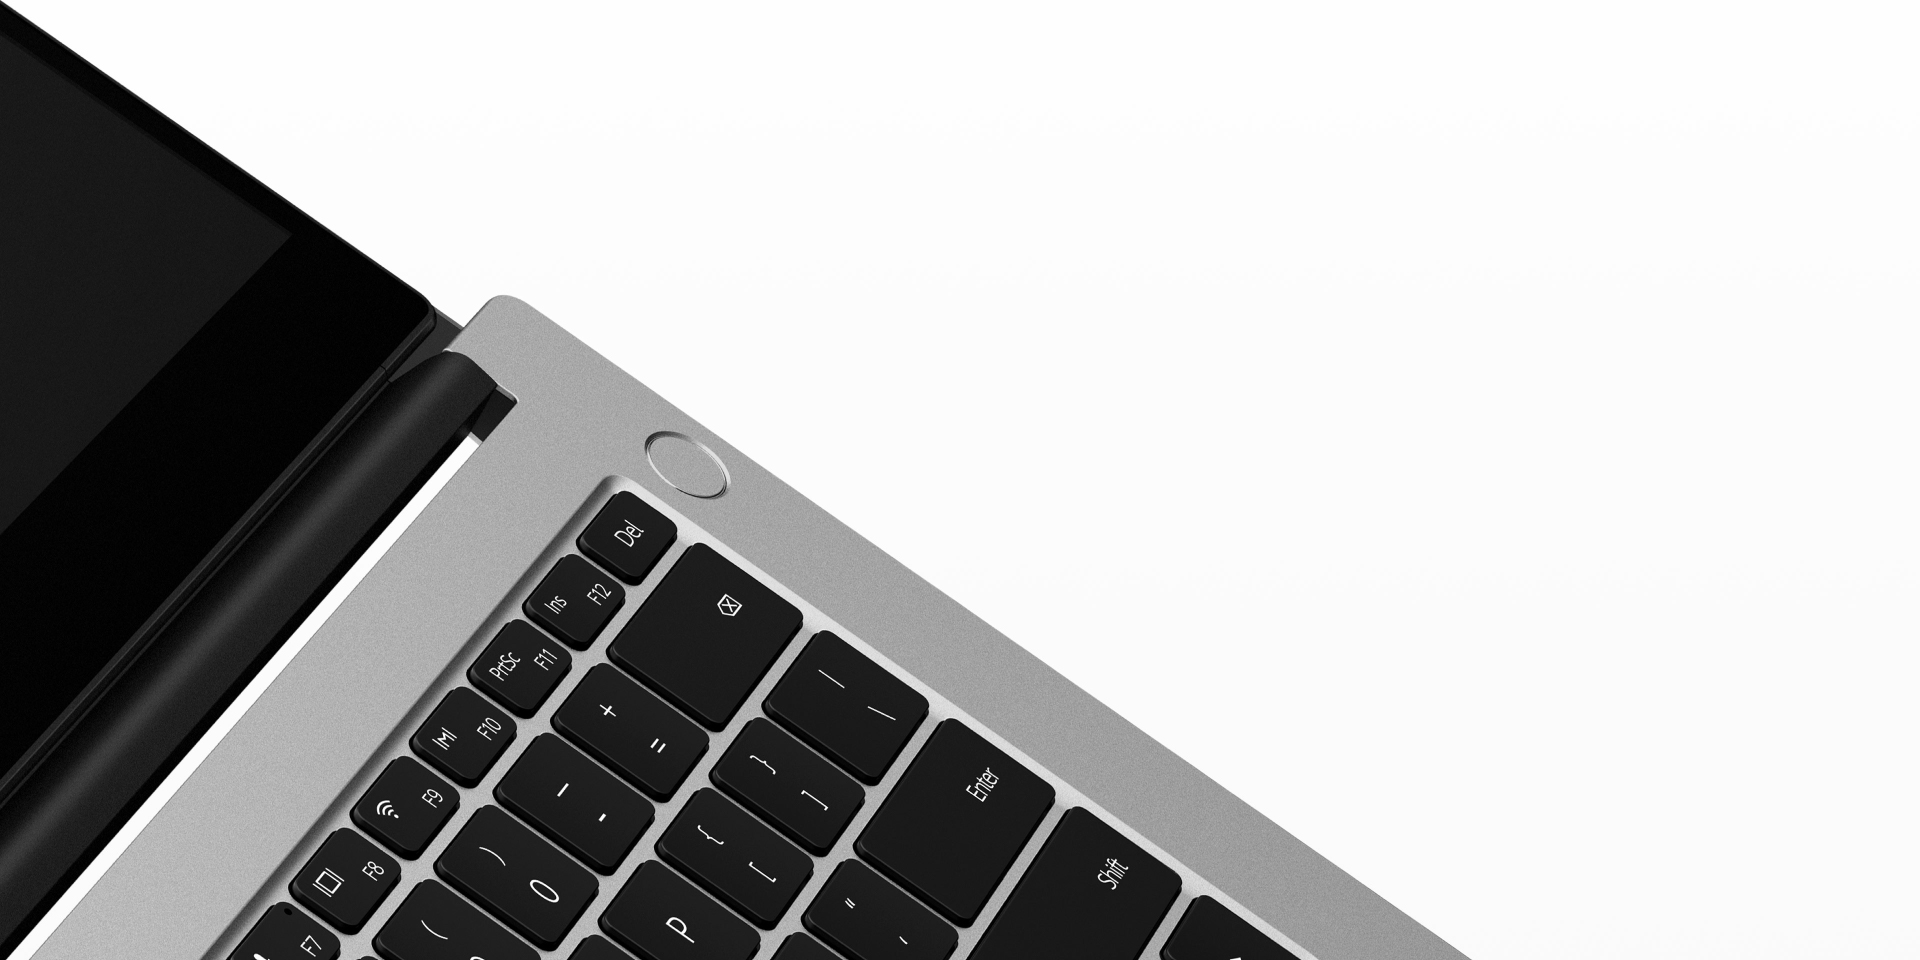 HUAWEI MateBook D 14 touch power button